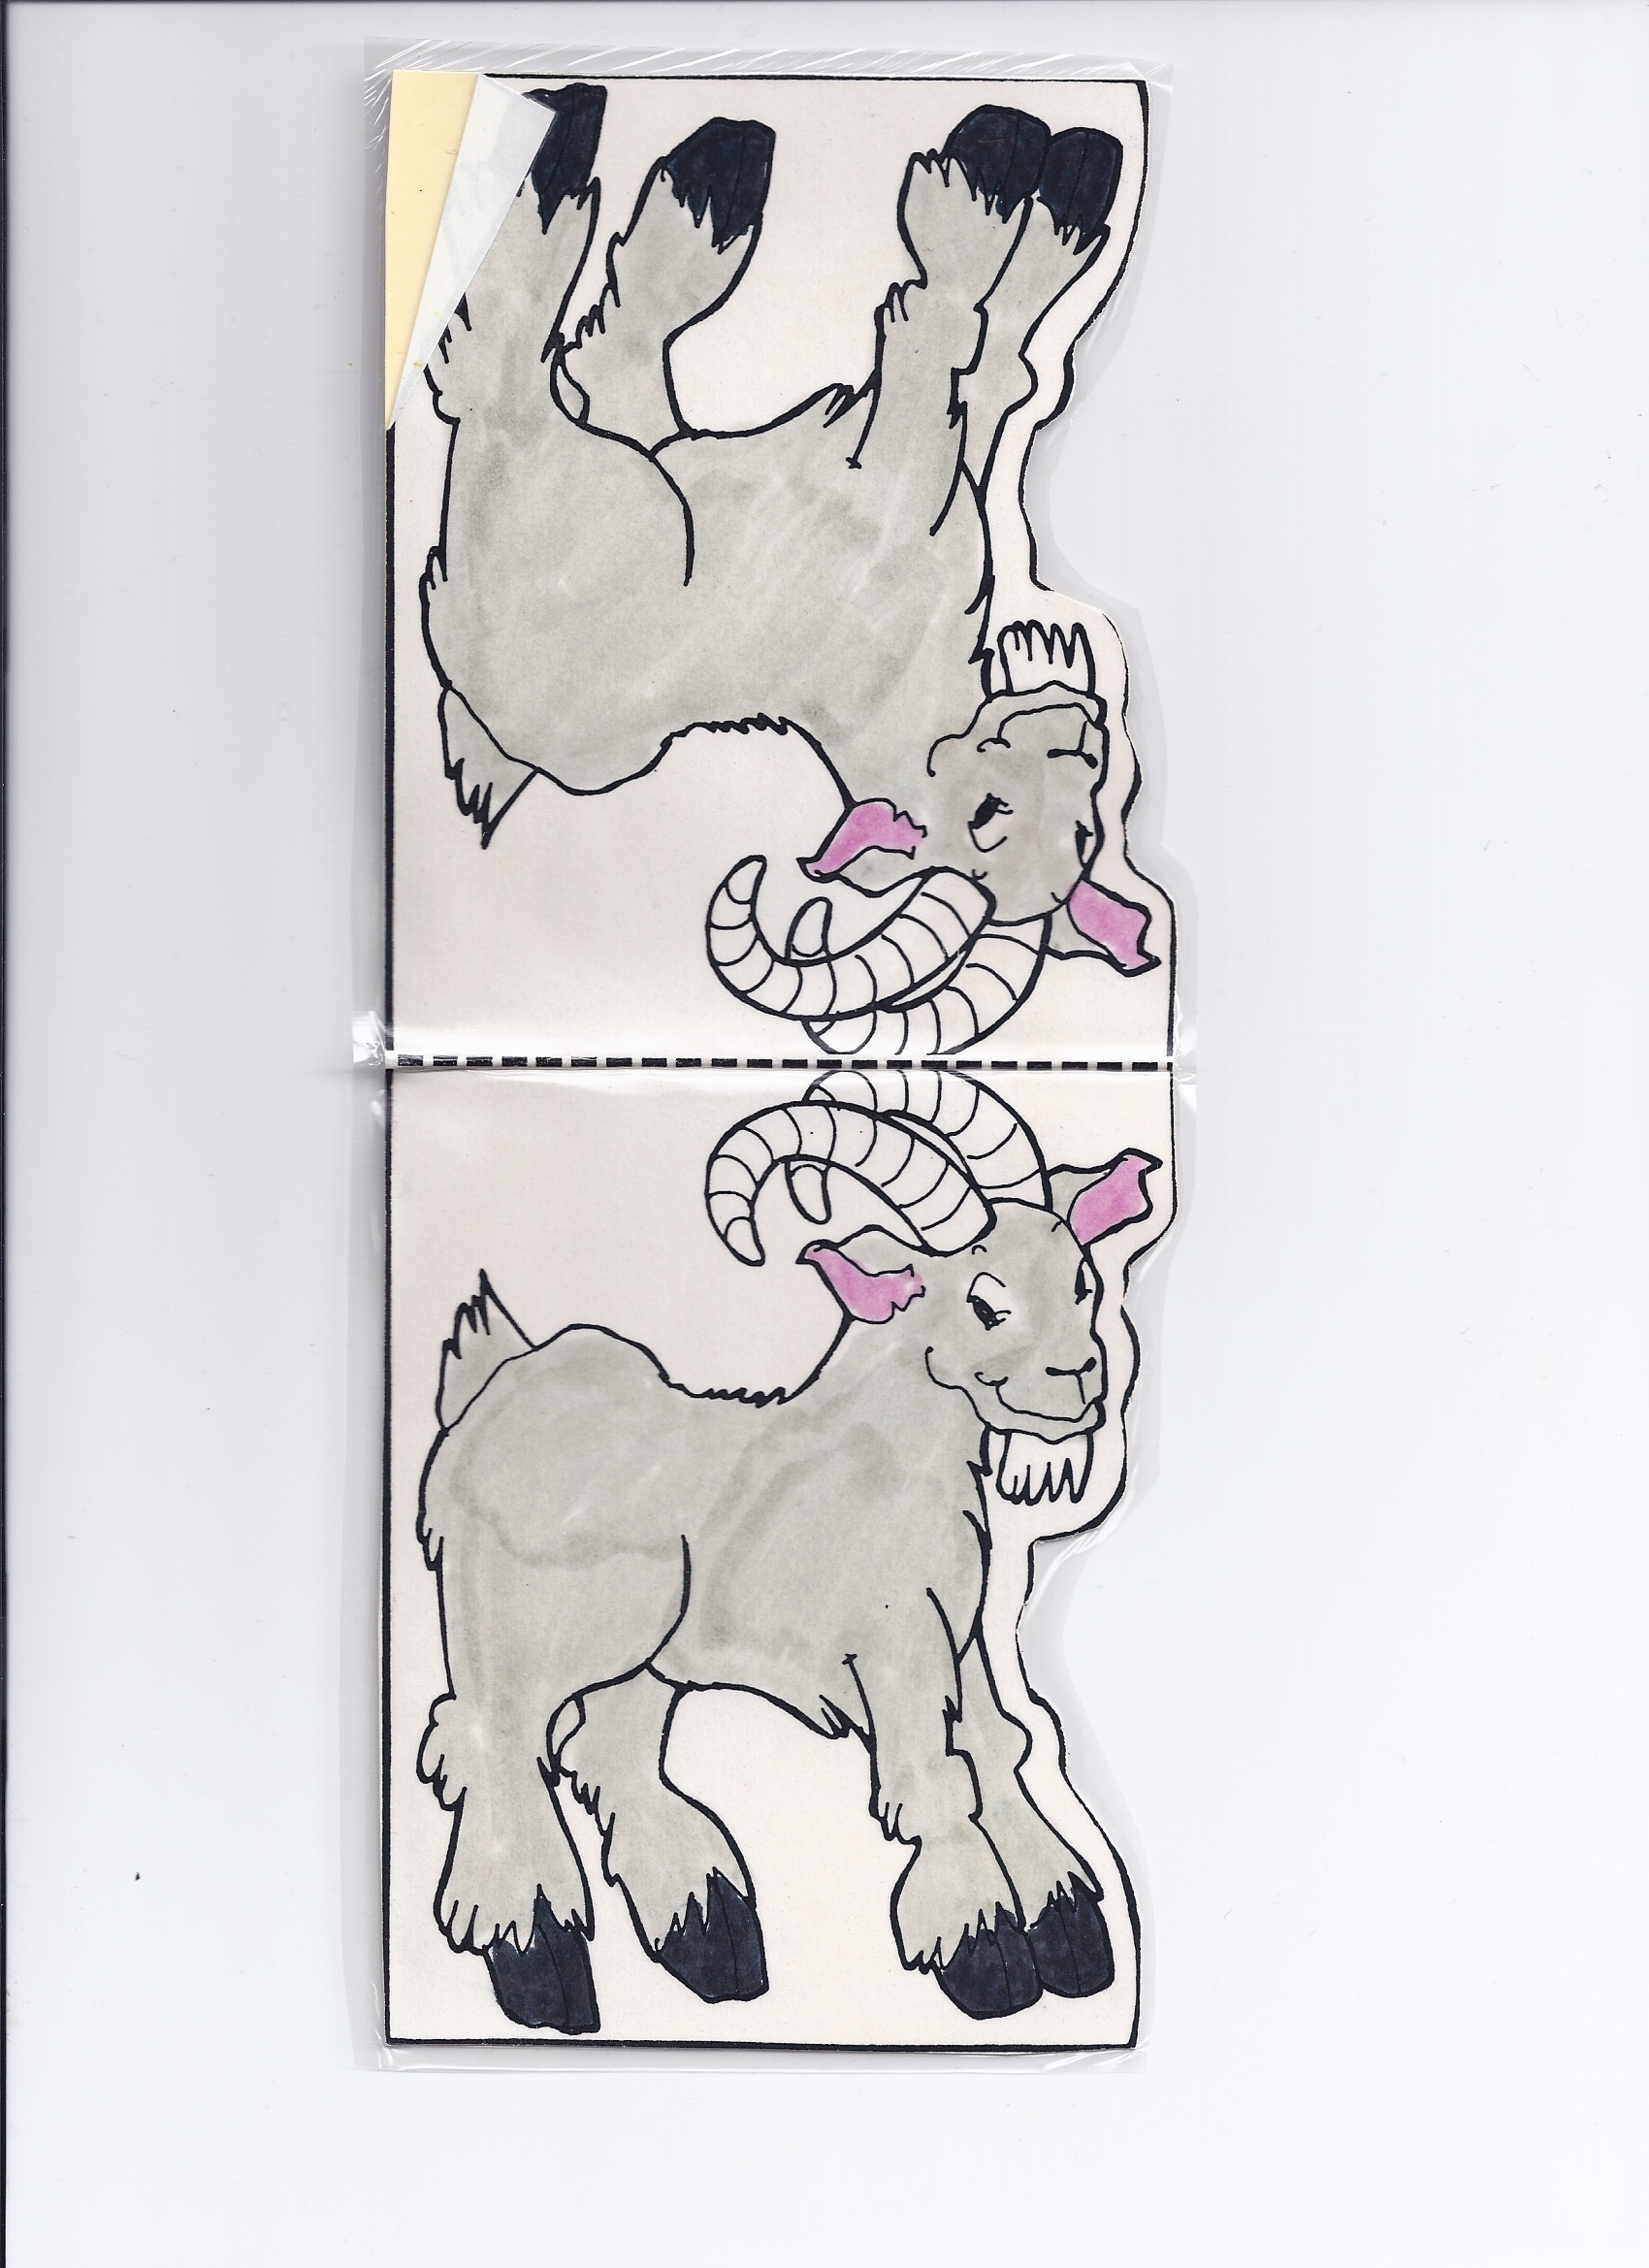 F E Dbce Dc Ab E F moreover Three Billy Goats Gruff Worksheets Easy further Troll likewise Billy Goats Gruff Playdough Mats together with Three Billy Goats Gruff Activities Retell. on the three billy goats gruff fairy tale